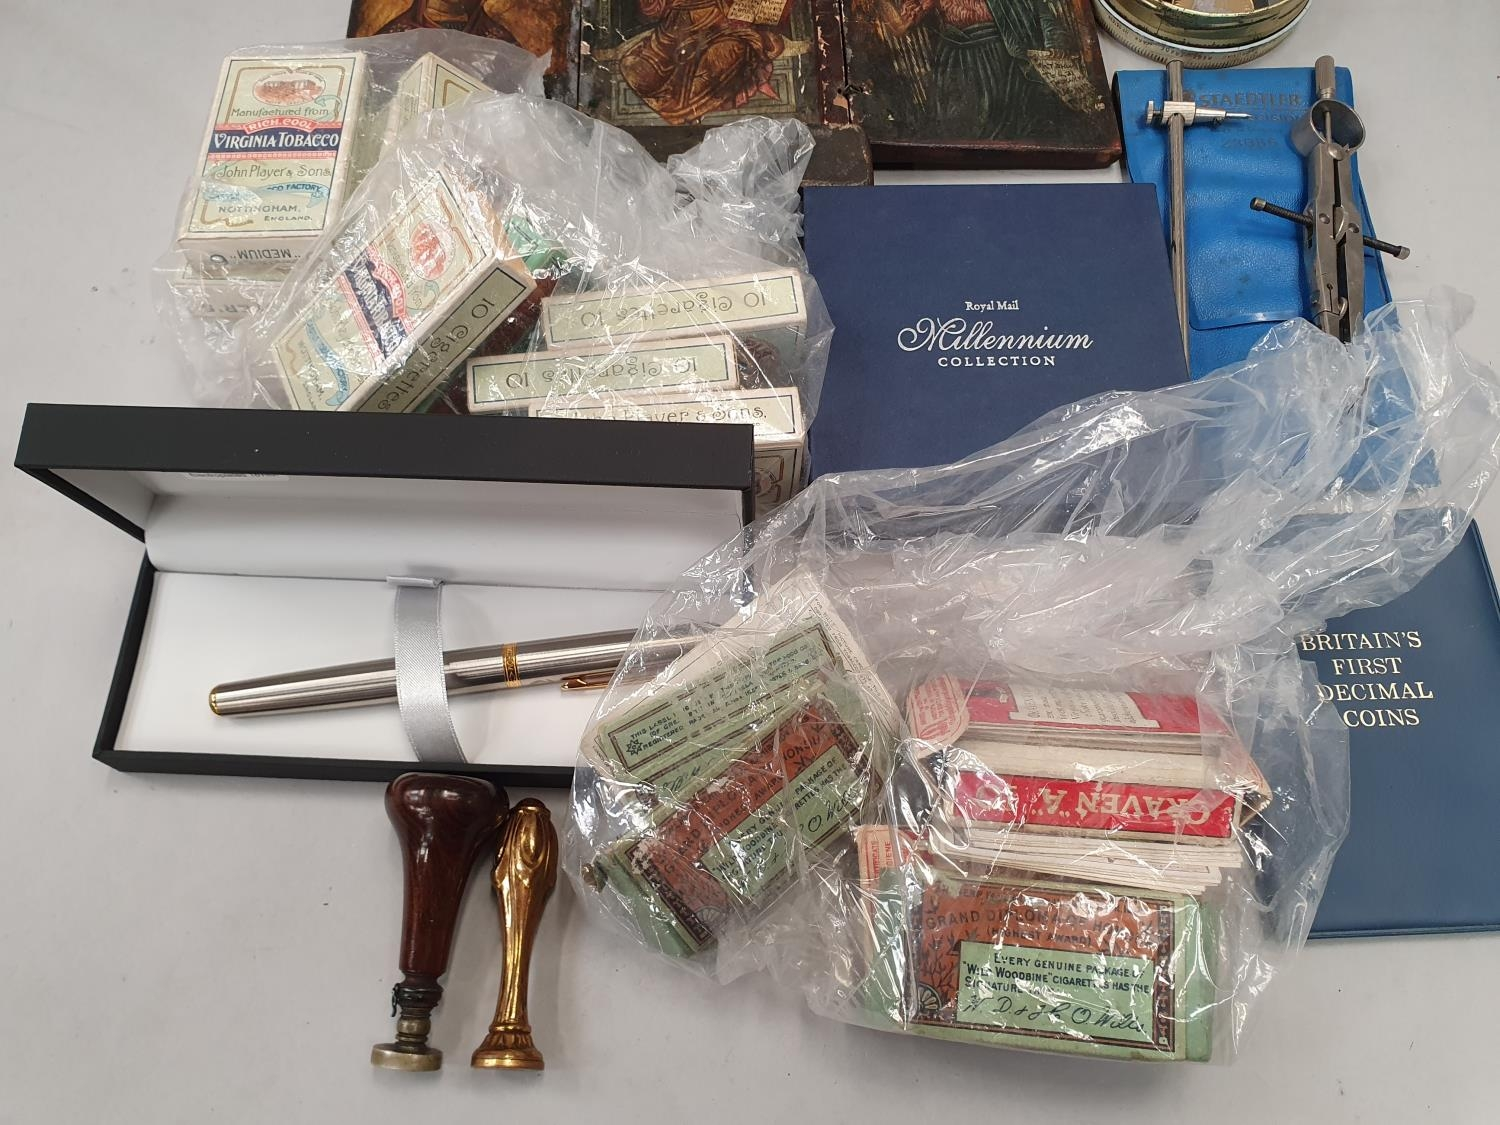 A 3 fold Icon, a Bulkam Sobrane Tobaco tin, various sets of Players cigarette cards and two seals. - Image 3 of 4